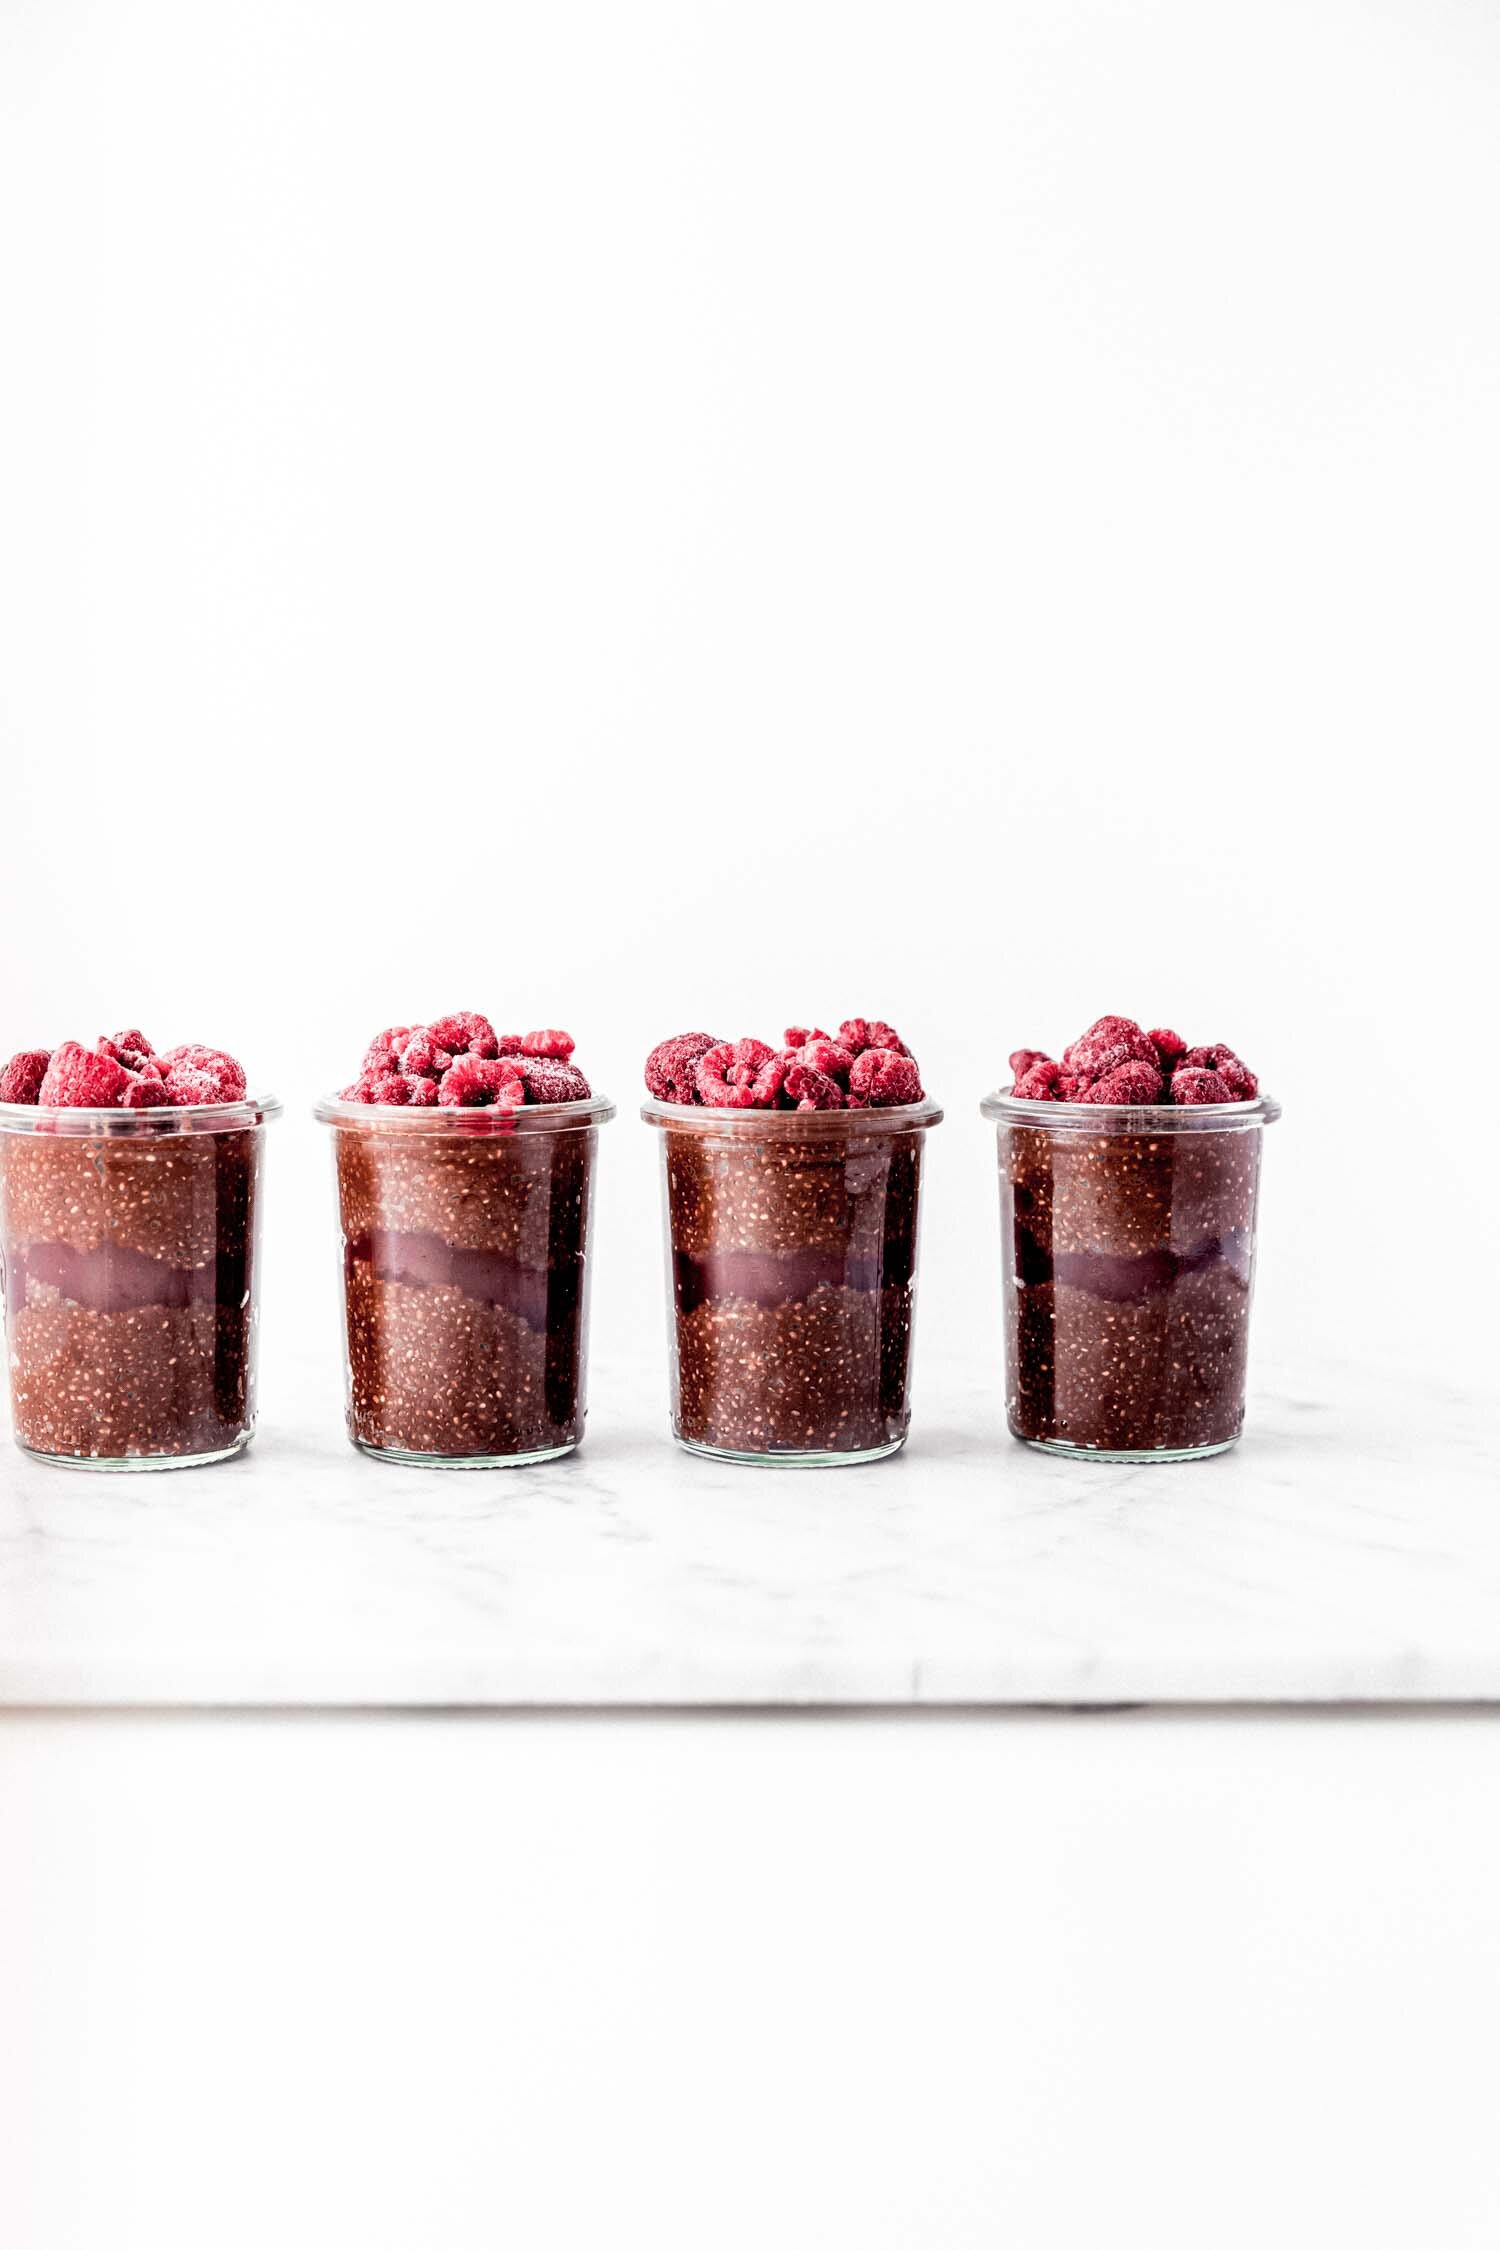 This Chocolate Raspberry Chia Pudding is vegan, gluten-free, and ready to eat in 10 minutes. #plantbased #veganrecipe #vegan #breakfast #chiapudding #raspberry #chocolate #refinedsugarfree #quickandeasyrecipe #easybreakfast #quickbreakfast #vegandessert #glutenfree #chia